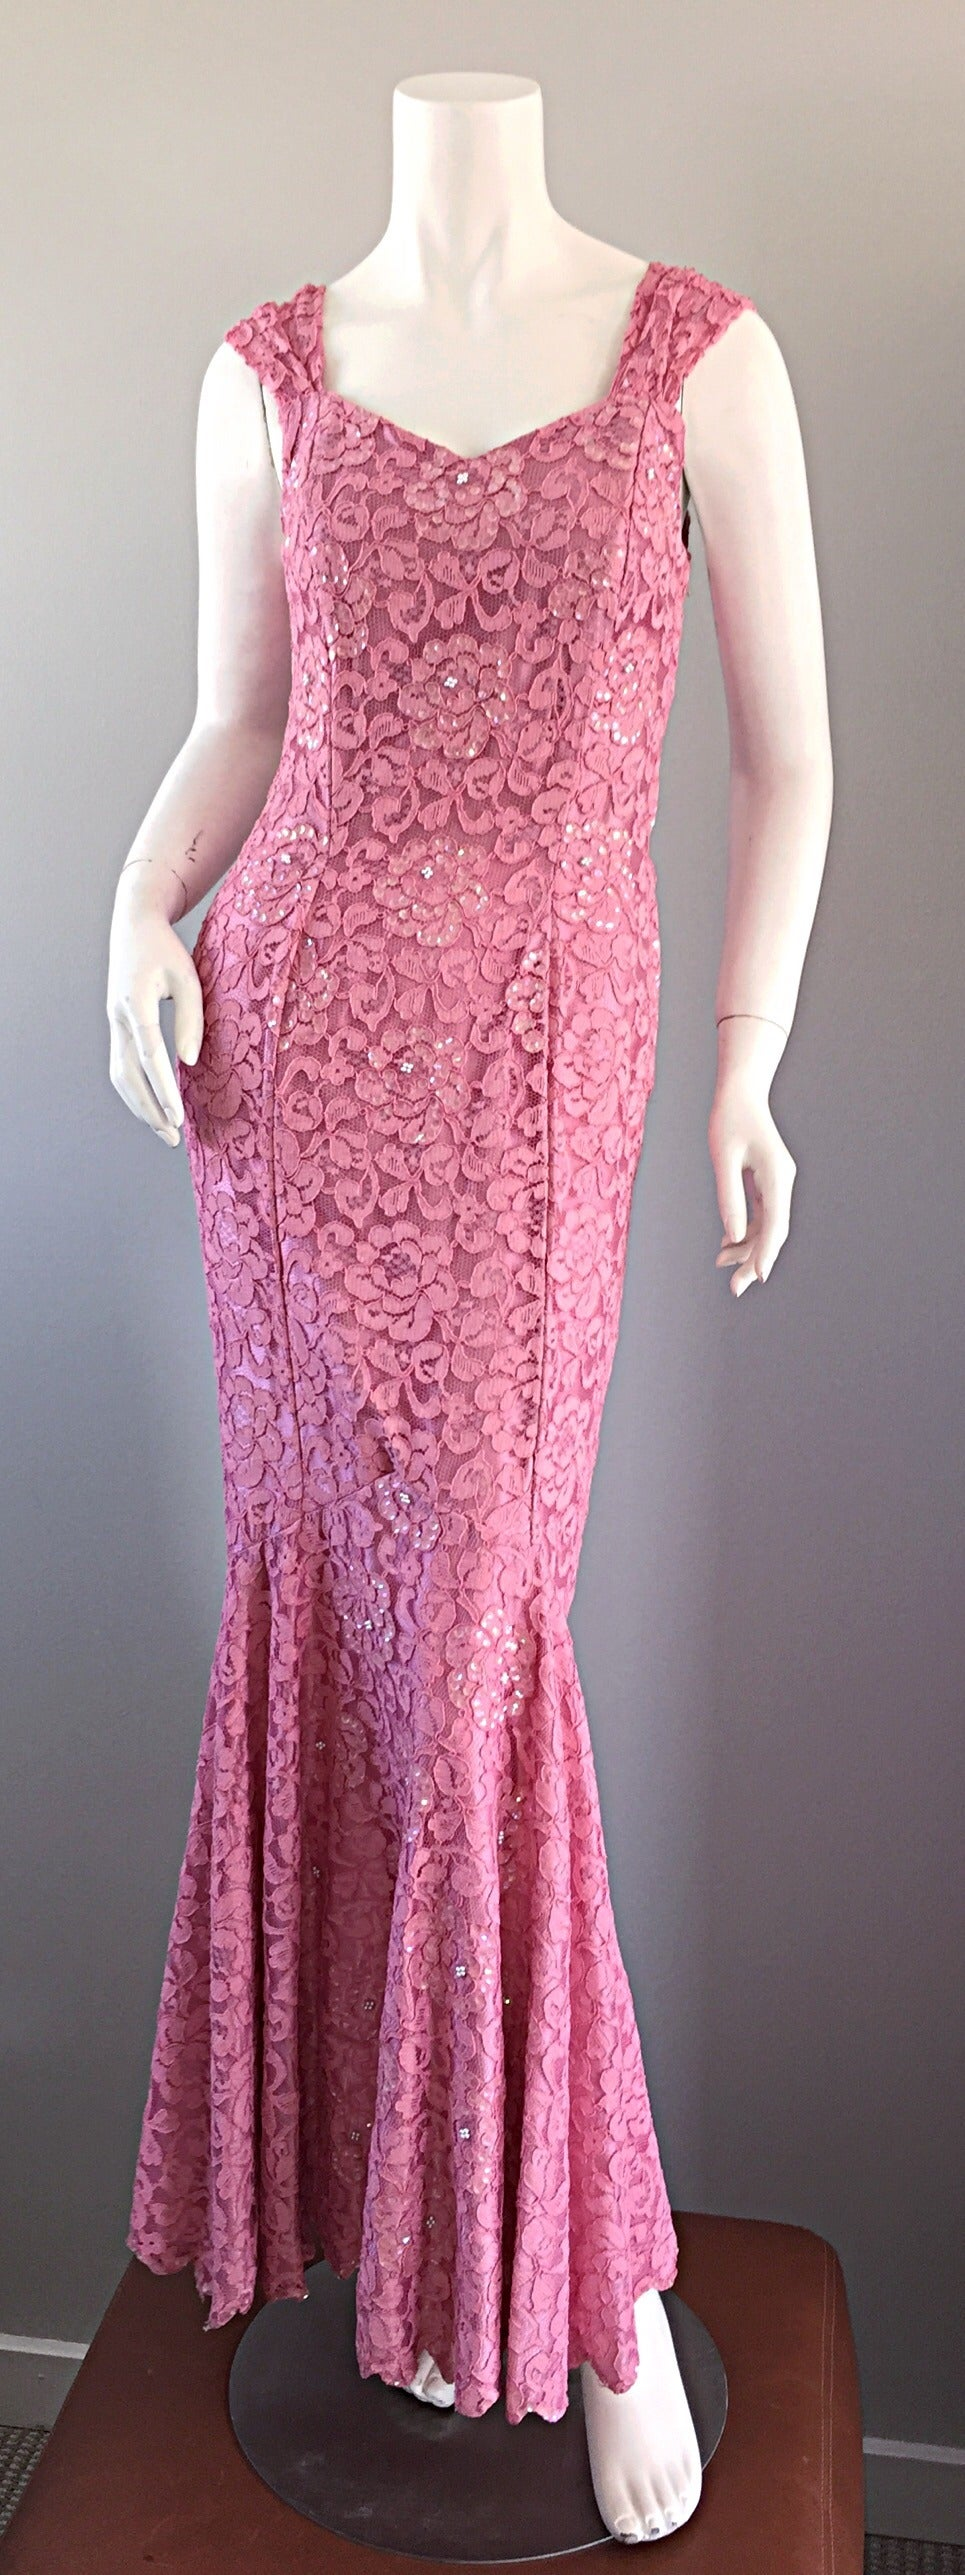 Gorgeous 1950s 50s Couture Pink Vintage Mermaid Dress w/ Chantilly Lace + Sequin 9